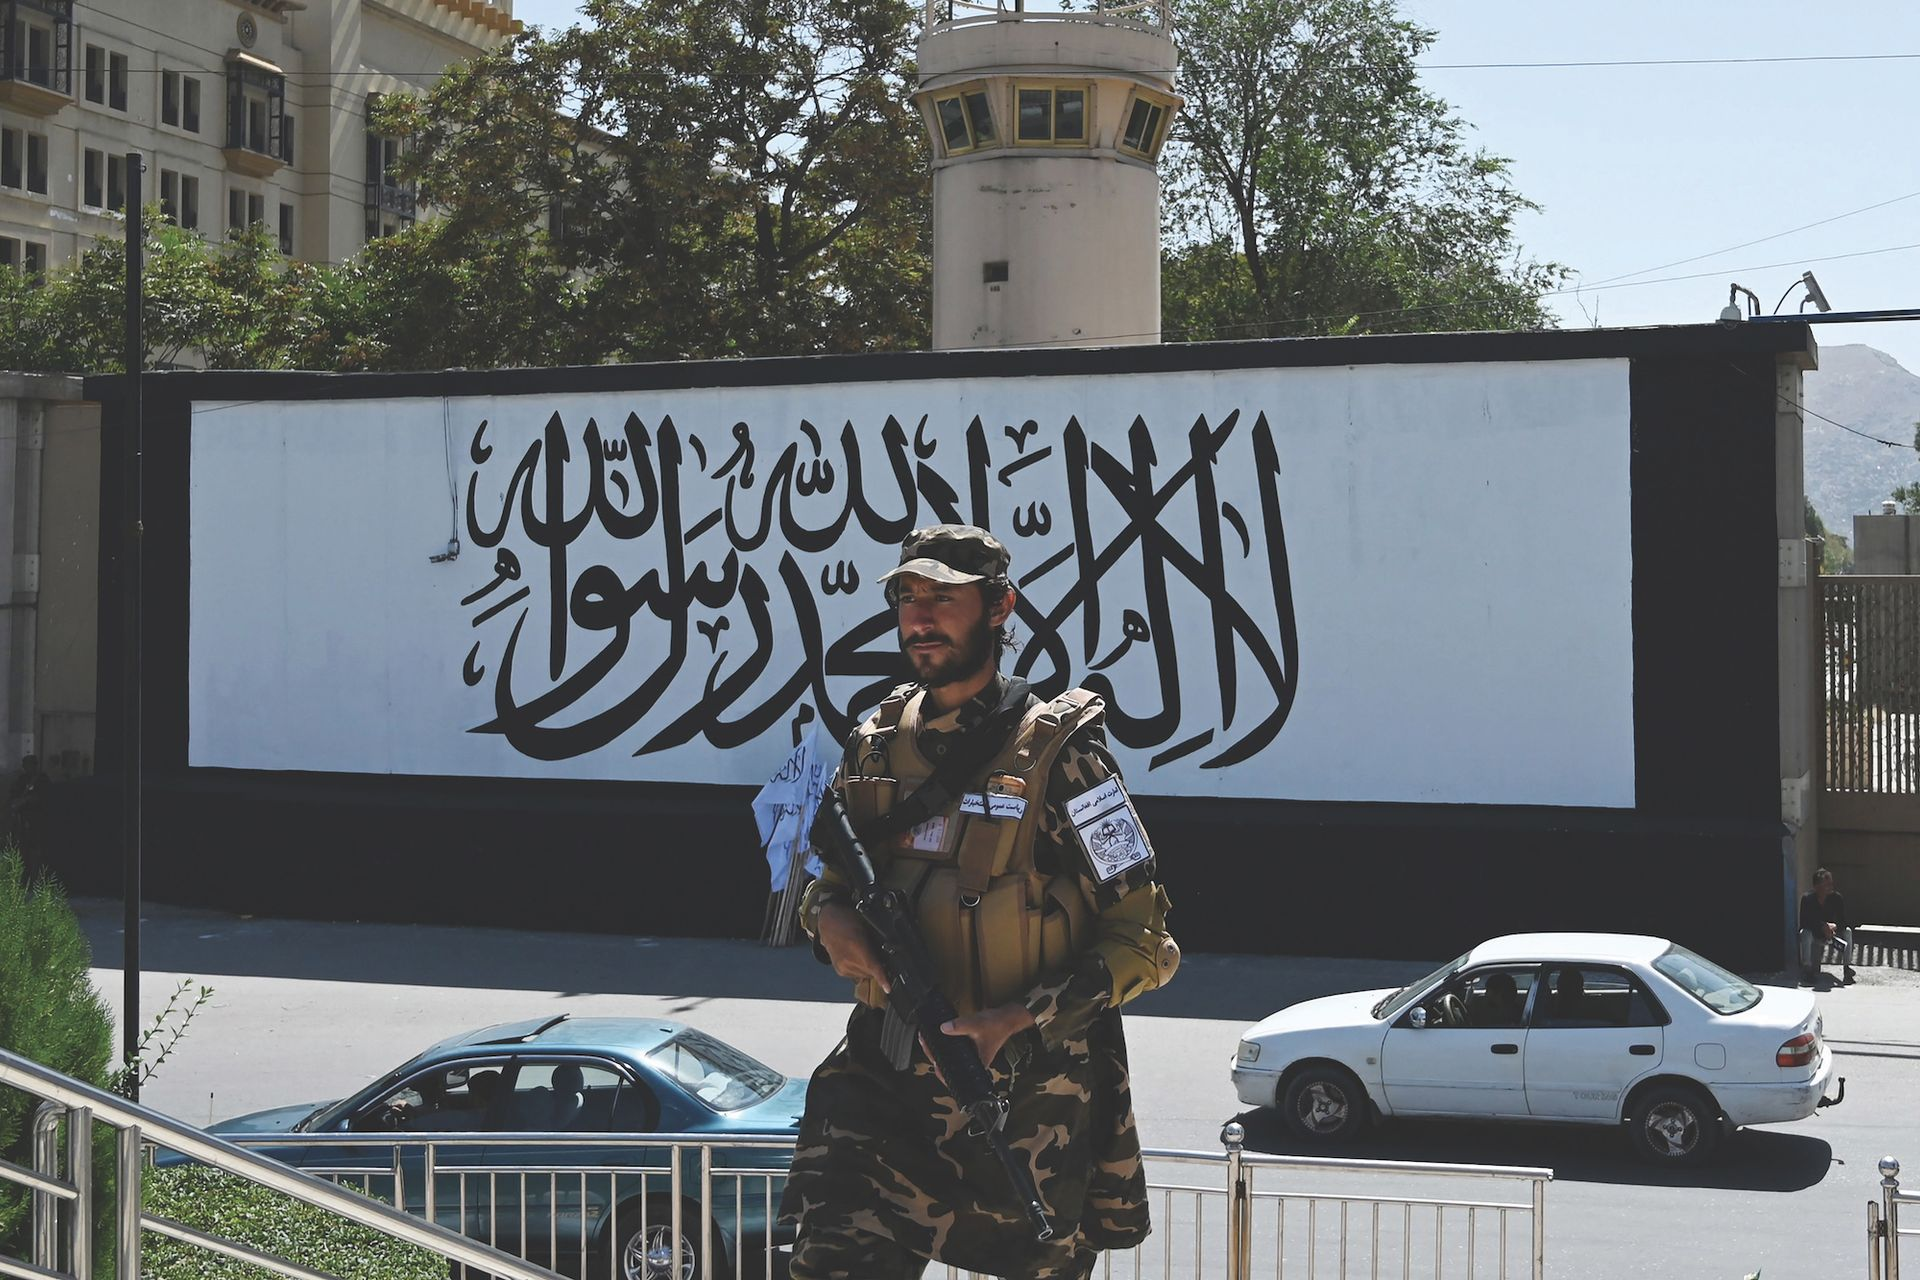 The dozen buildings that form the US embassy complex in Kabul was completed in 2013 at a cost of more than $800m. As pictured last month, it now has a Taliban flag covering the entrance. Aamir Qureshi/AFP via Getty Images